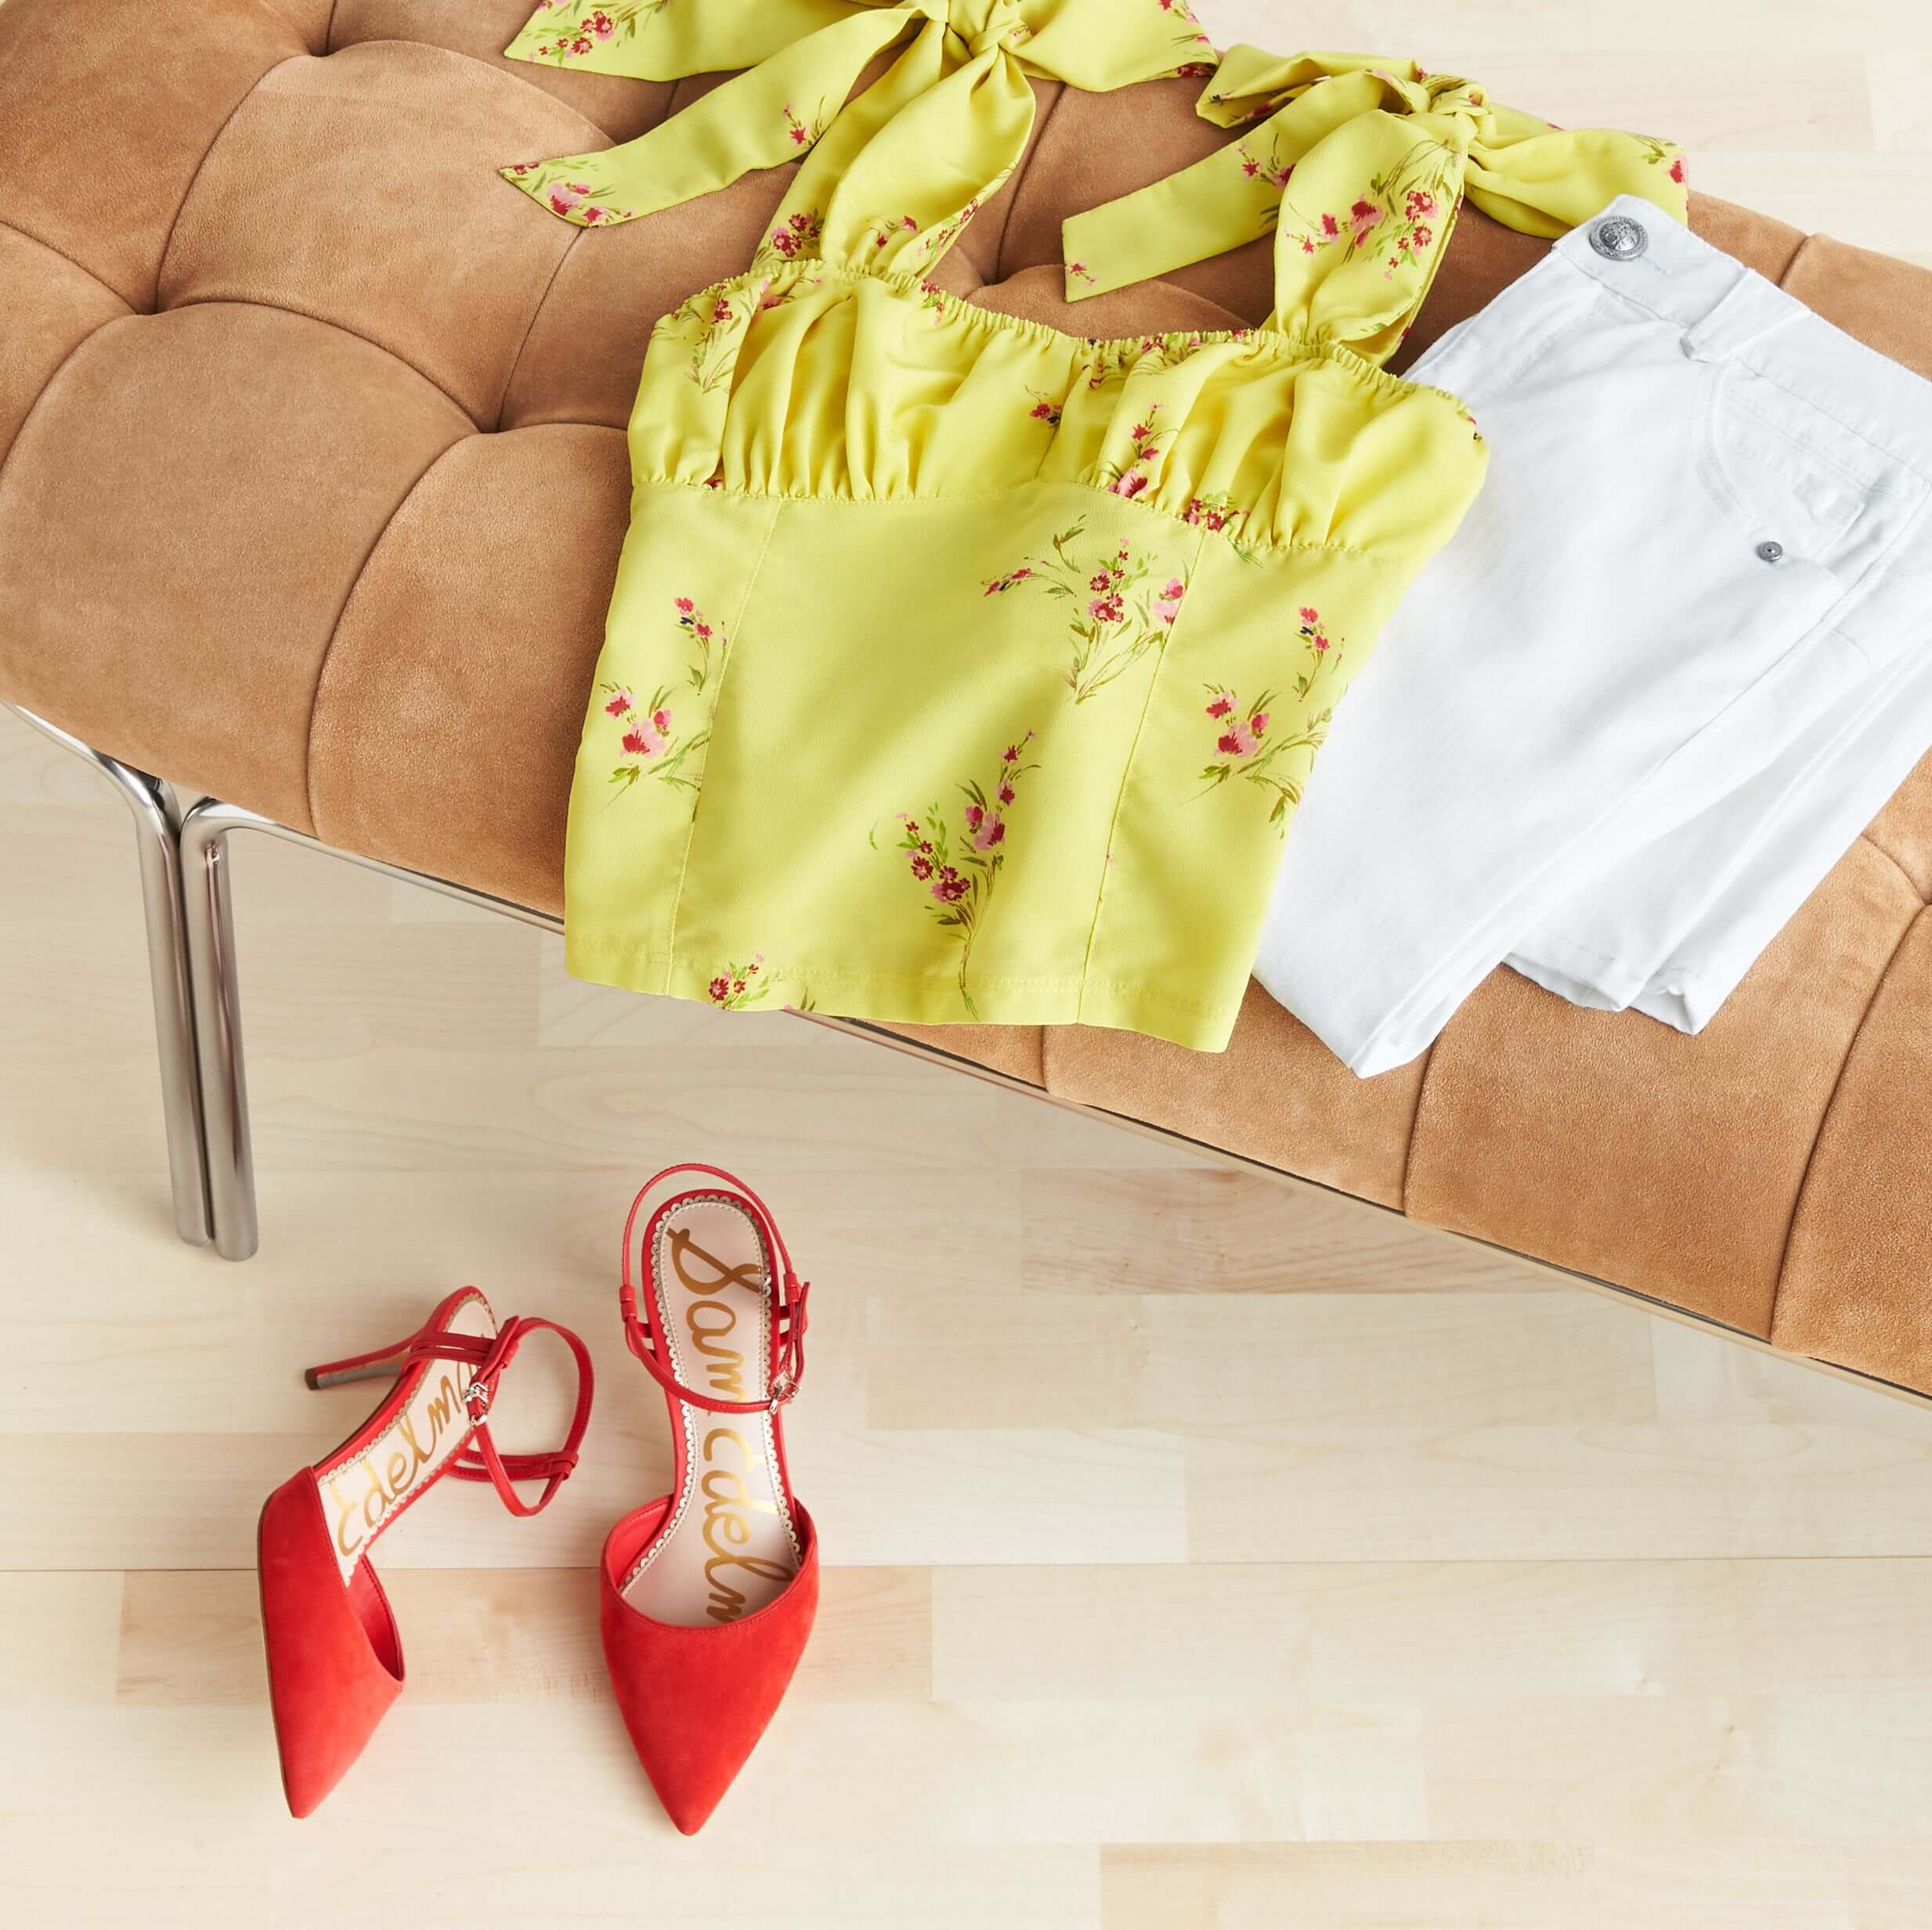 Stitch Fix Women's outfit laydown featuring yellow floral tie-sleeve tank and white denim on tan bench, next to red pointed heels on the floor.